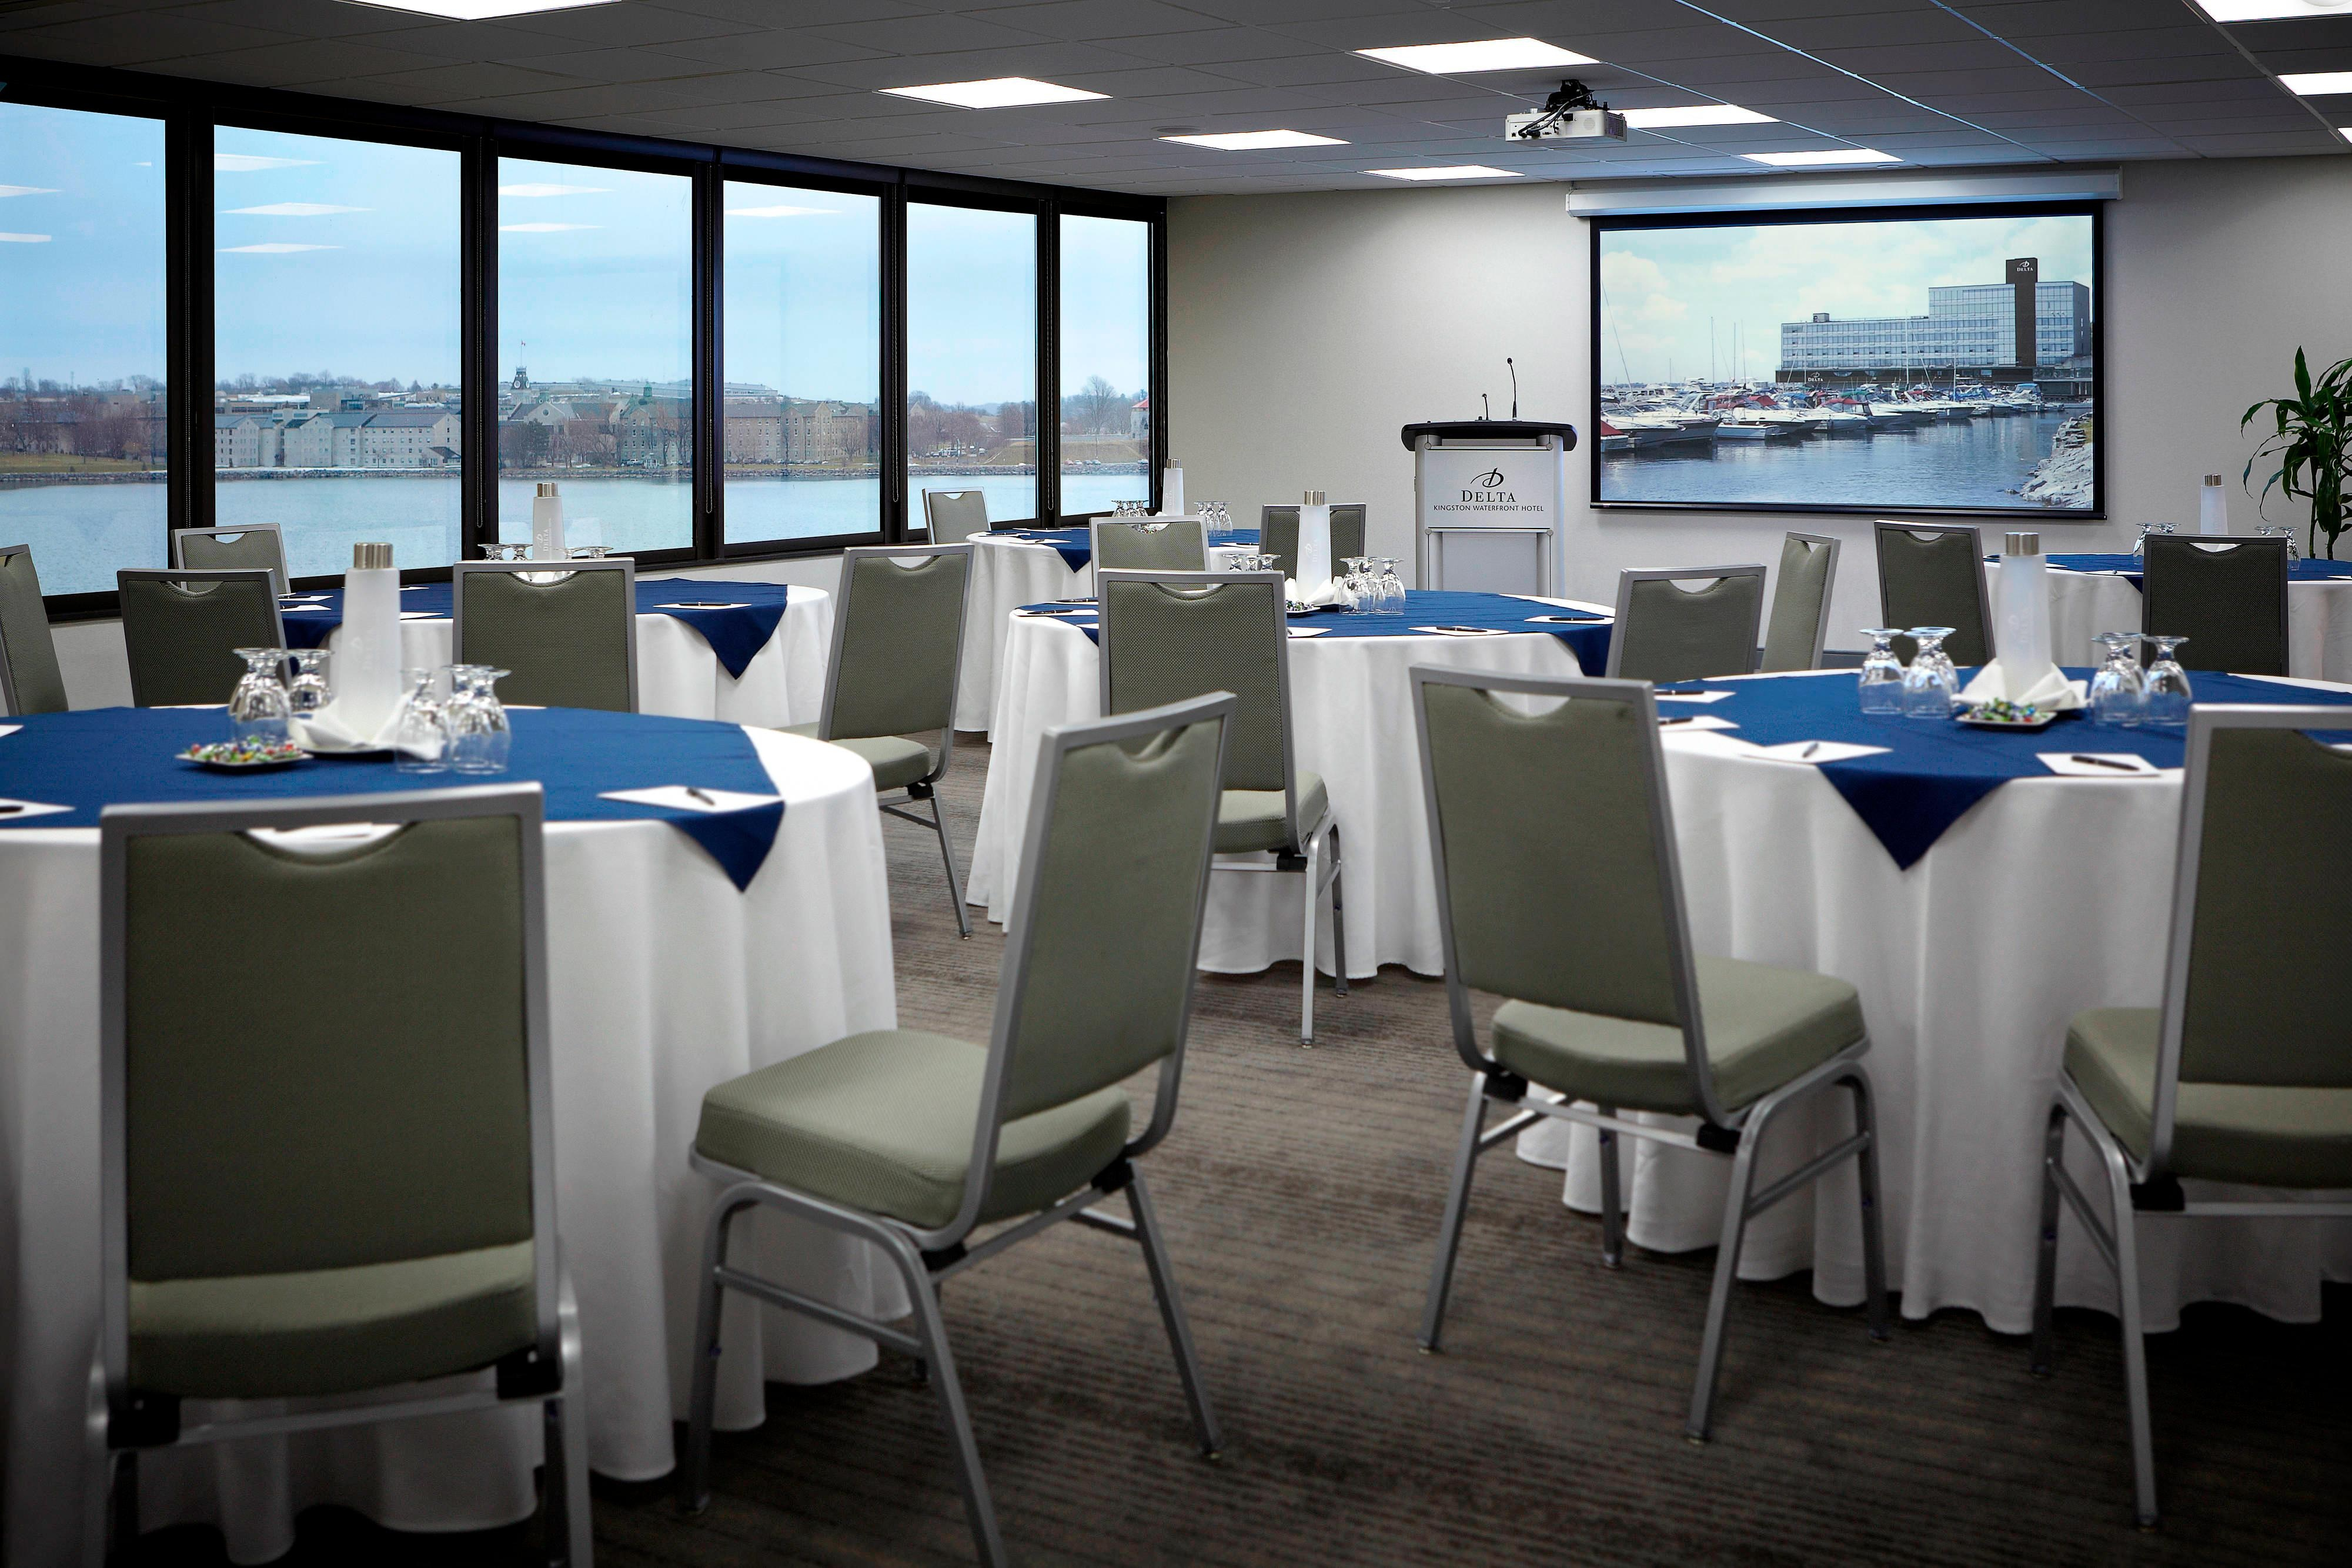 Harborview Meeting Room – Banquet Setup